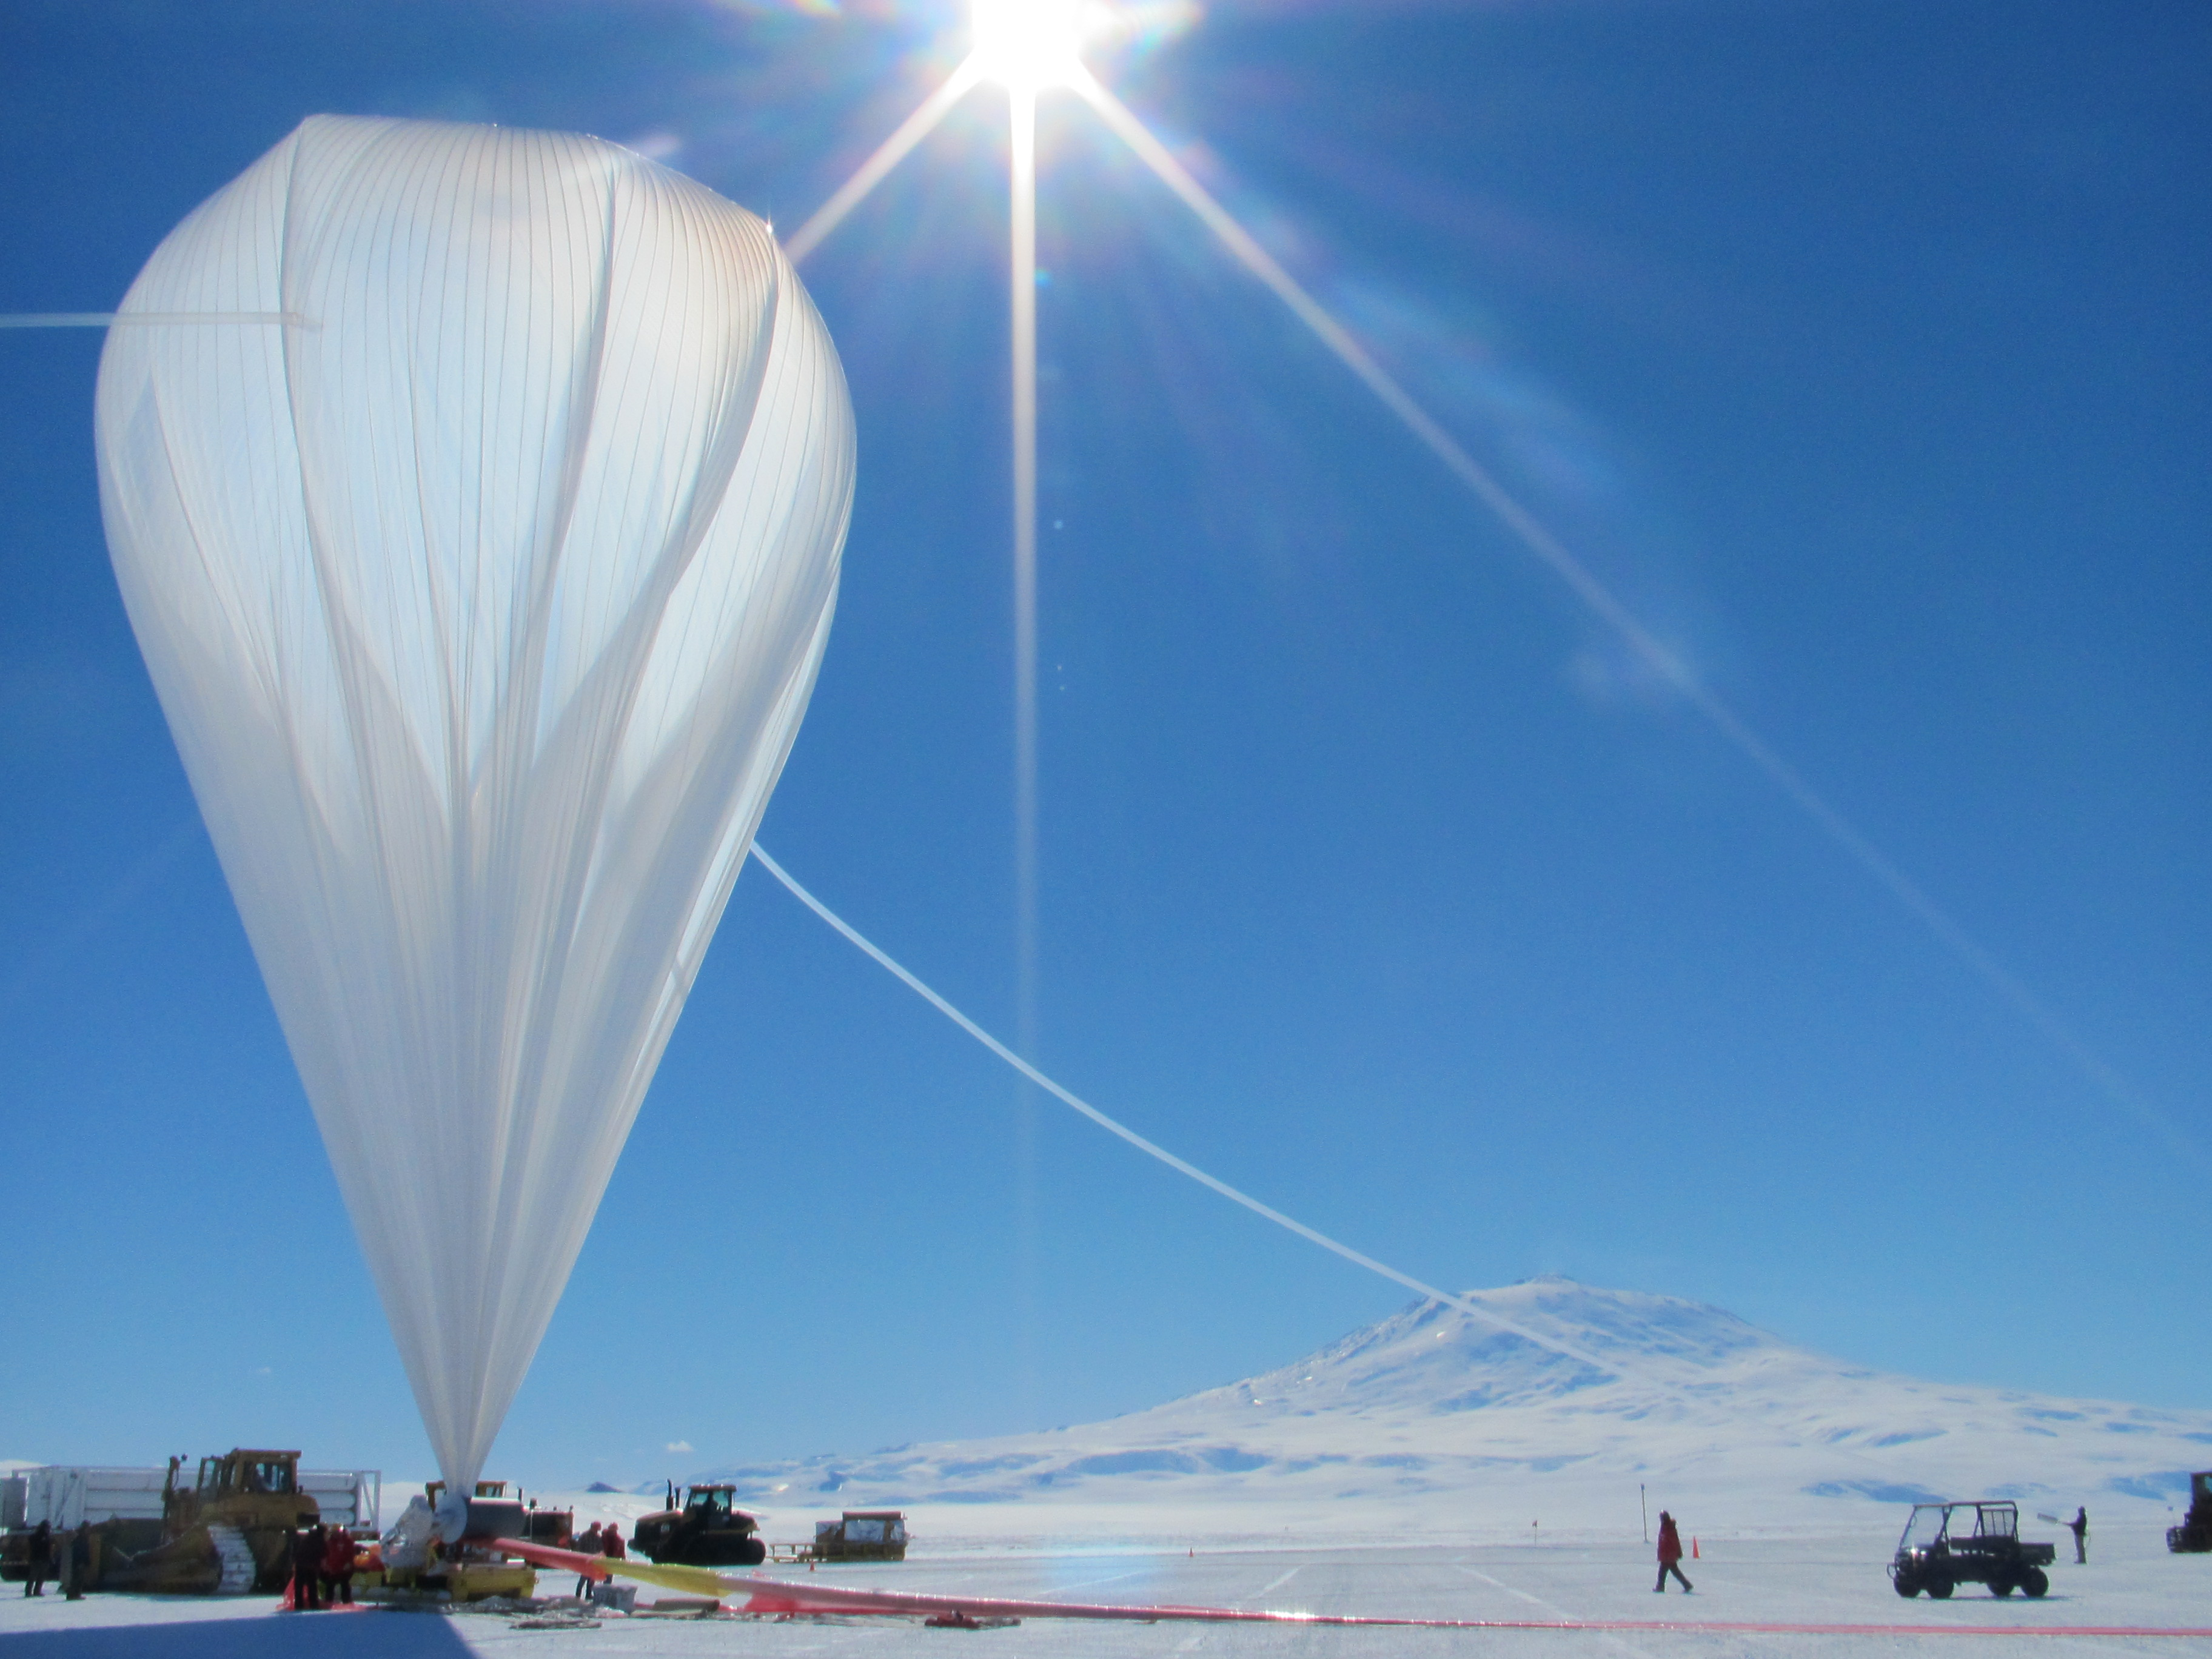 The CREAM balloon launches from Antarctica.